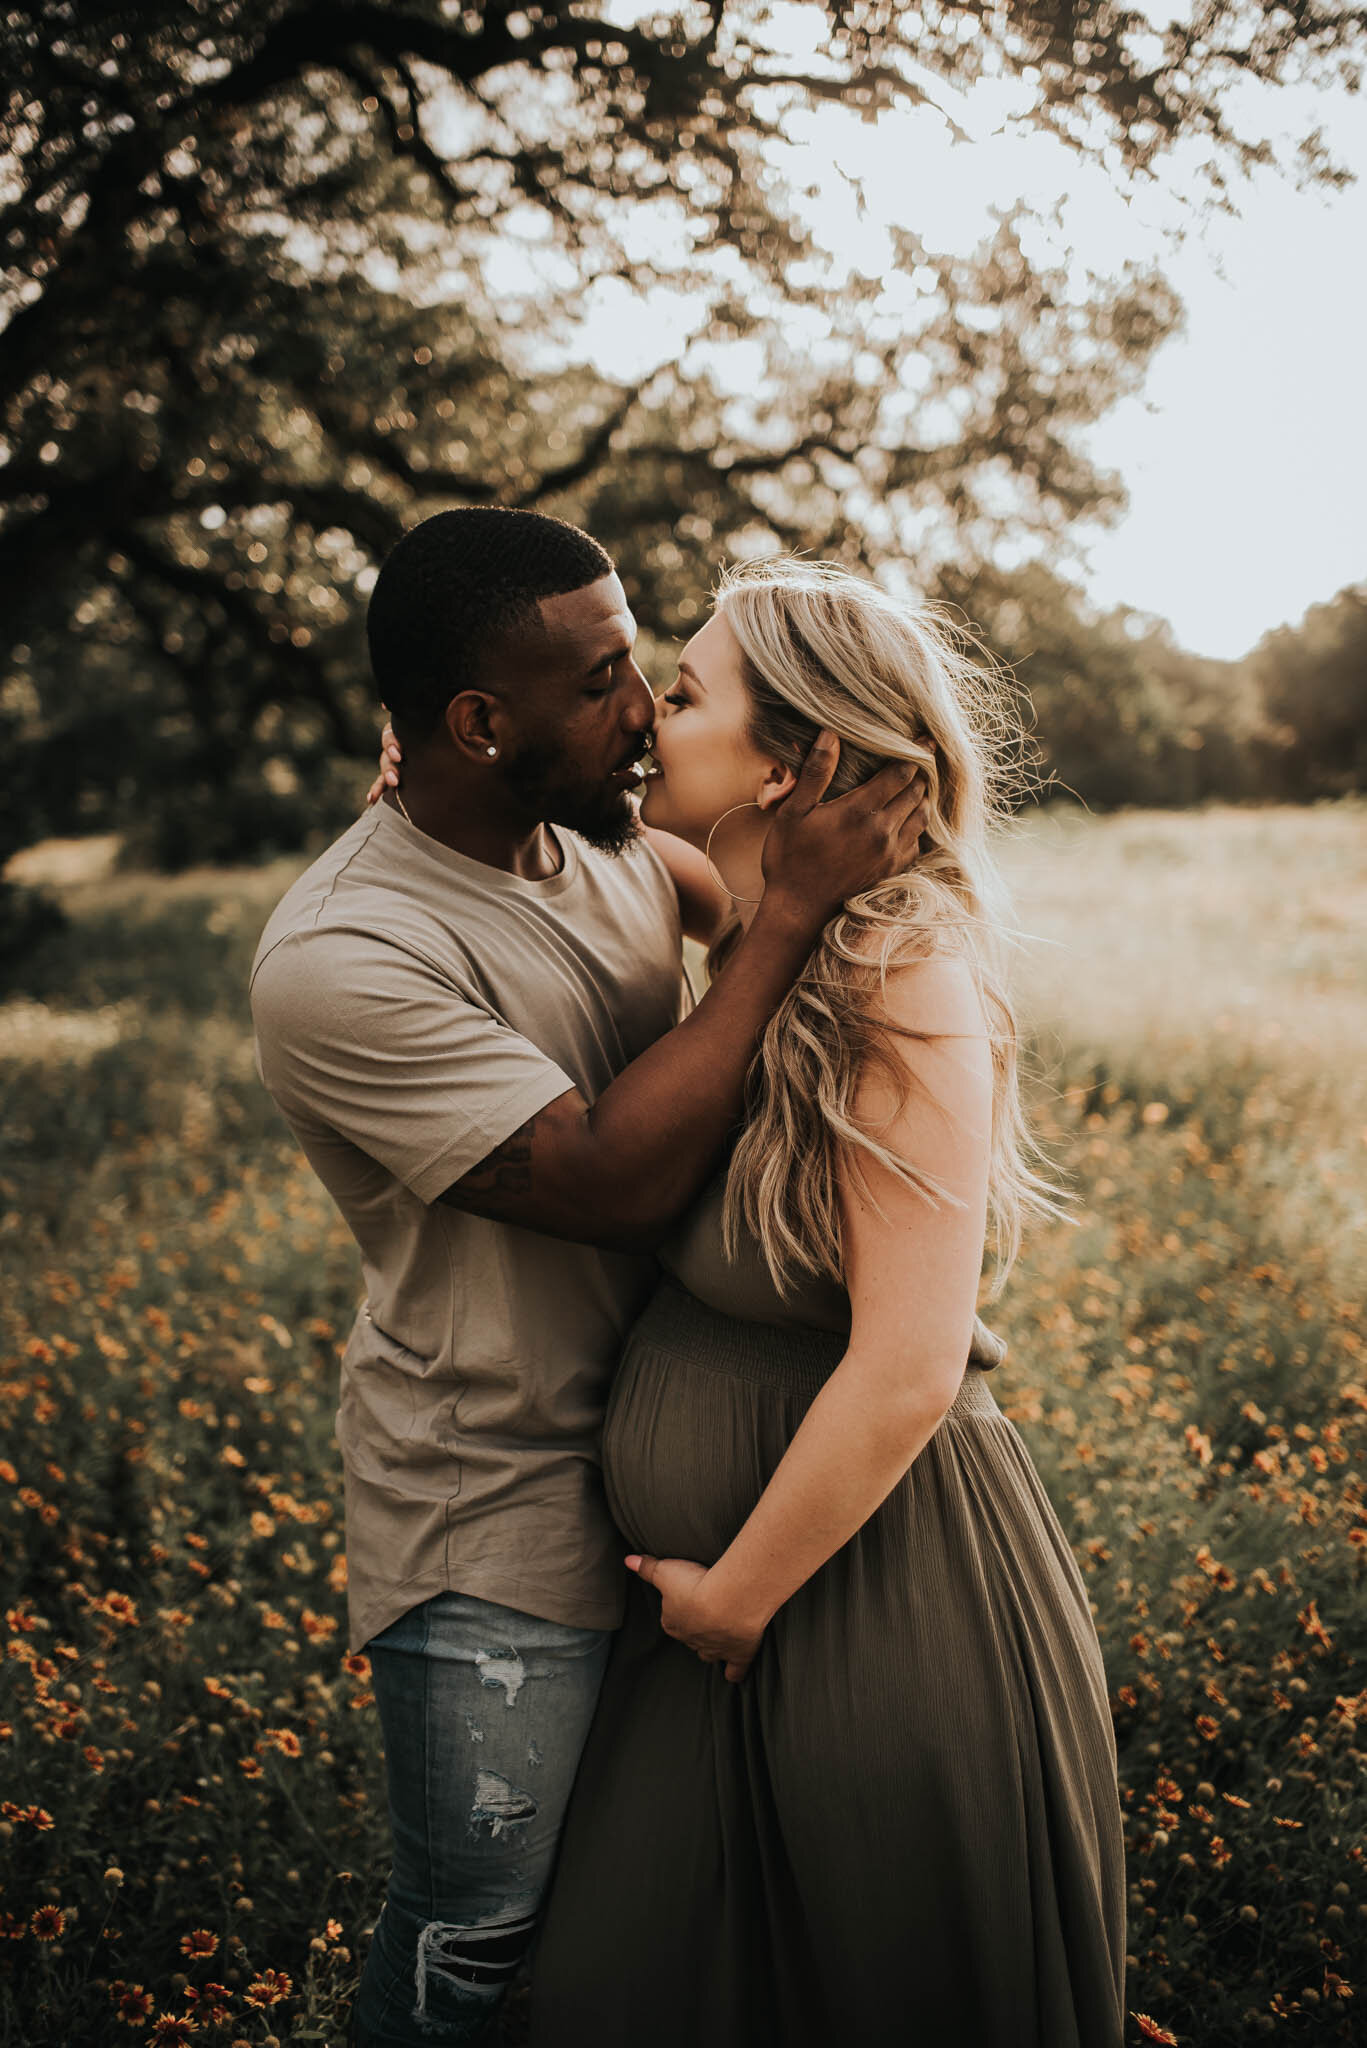 Beautiful Maternity Session by Austin Family Photographer.